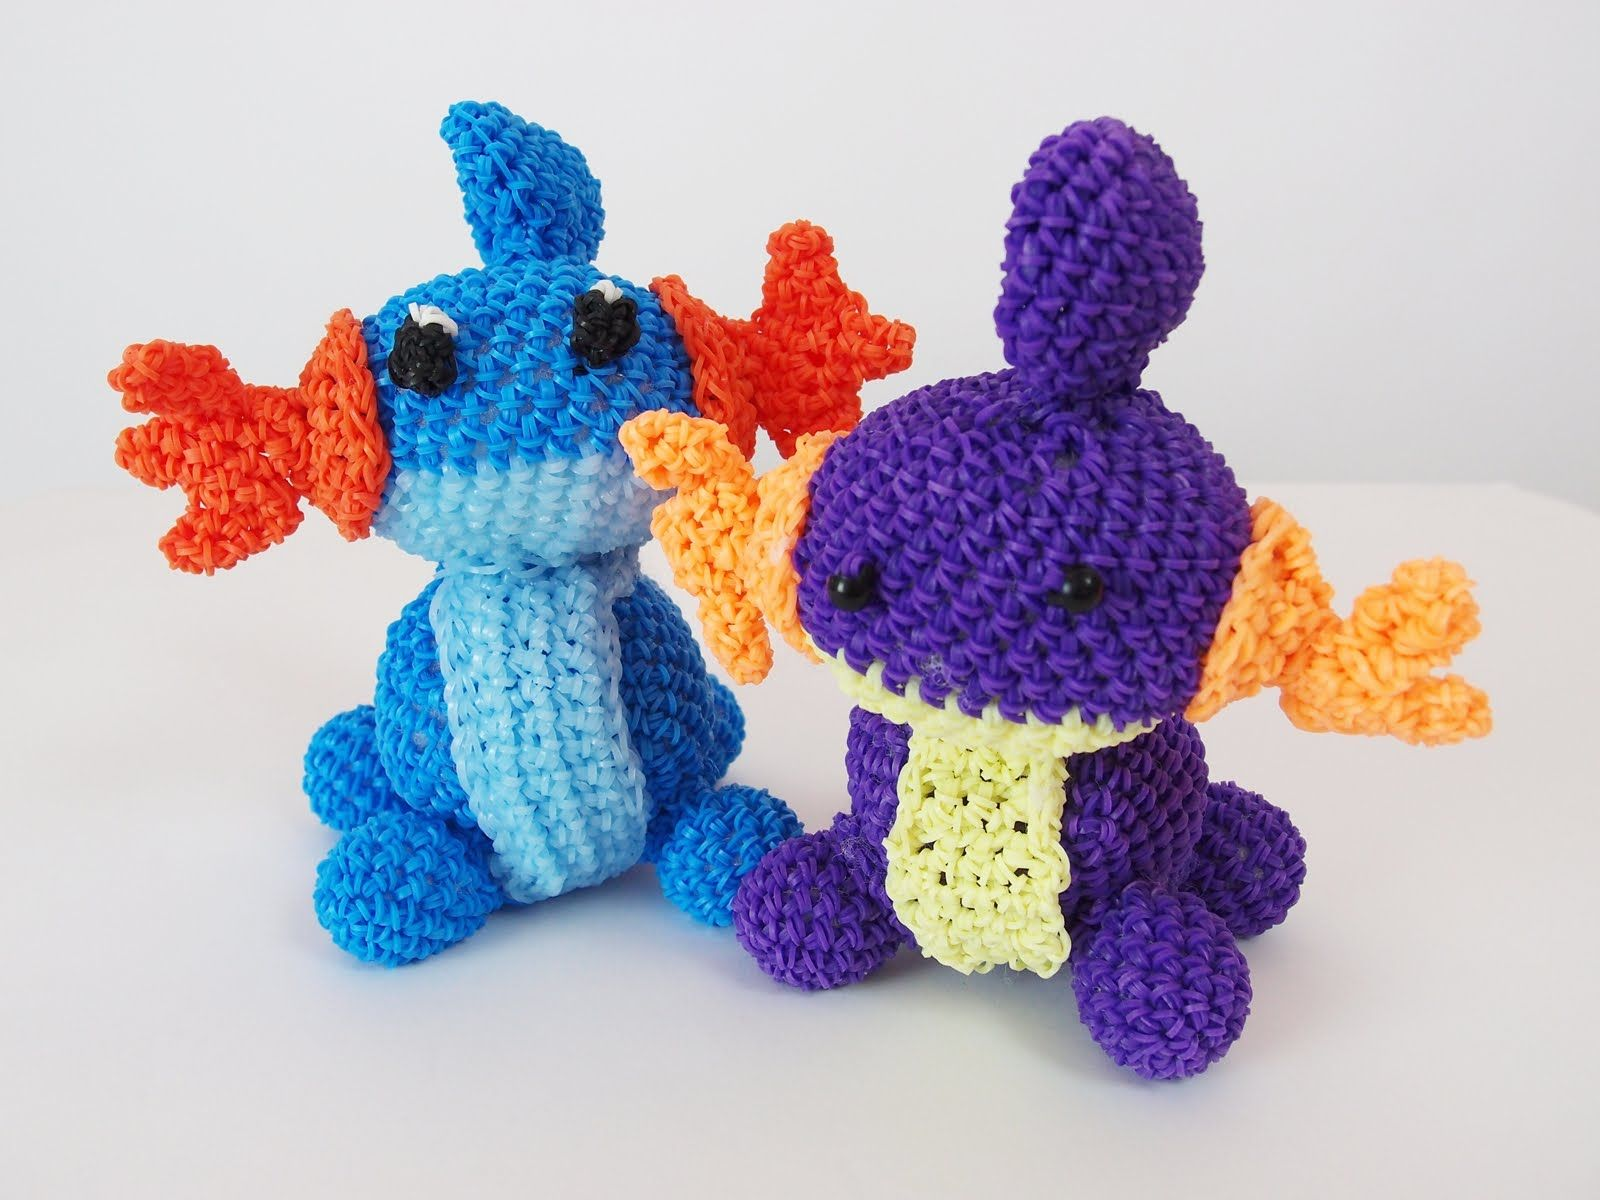 Amigurumi Loom Patterns : Mudkip pokemon rainbow loom bands amigurumi loomigurumi hook only